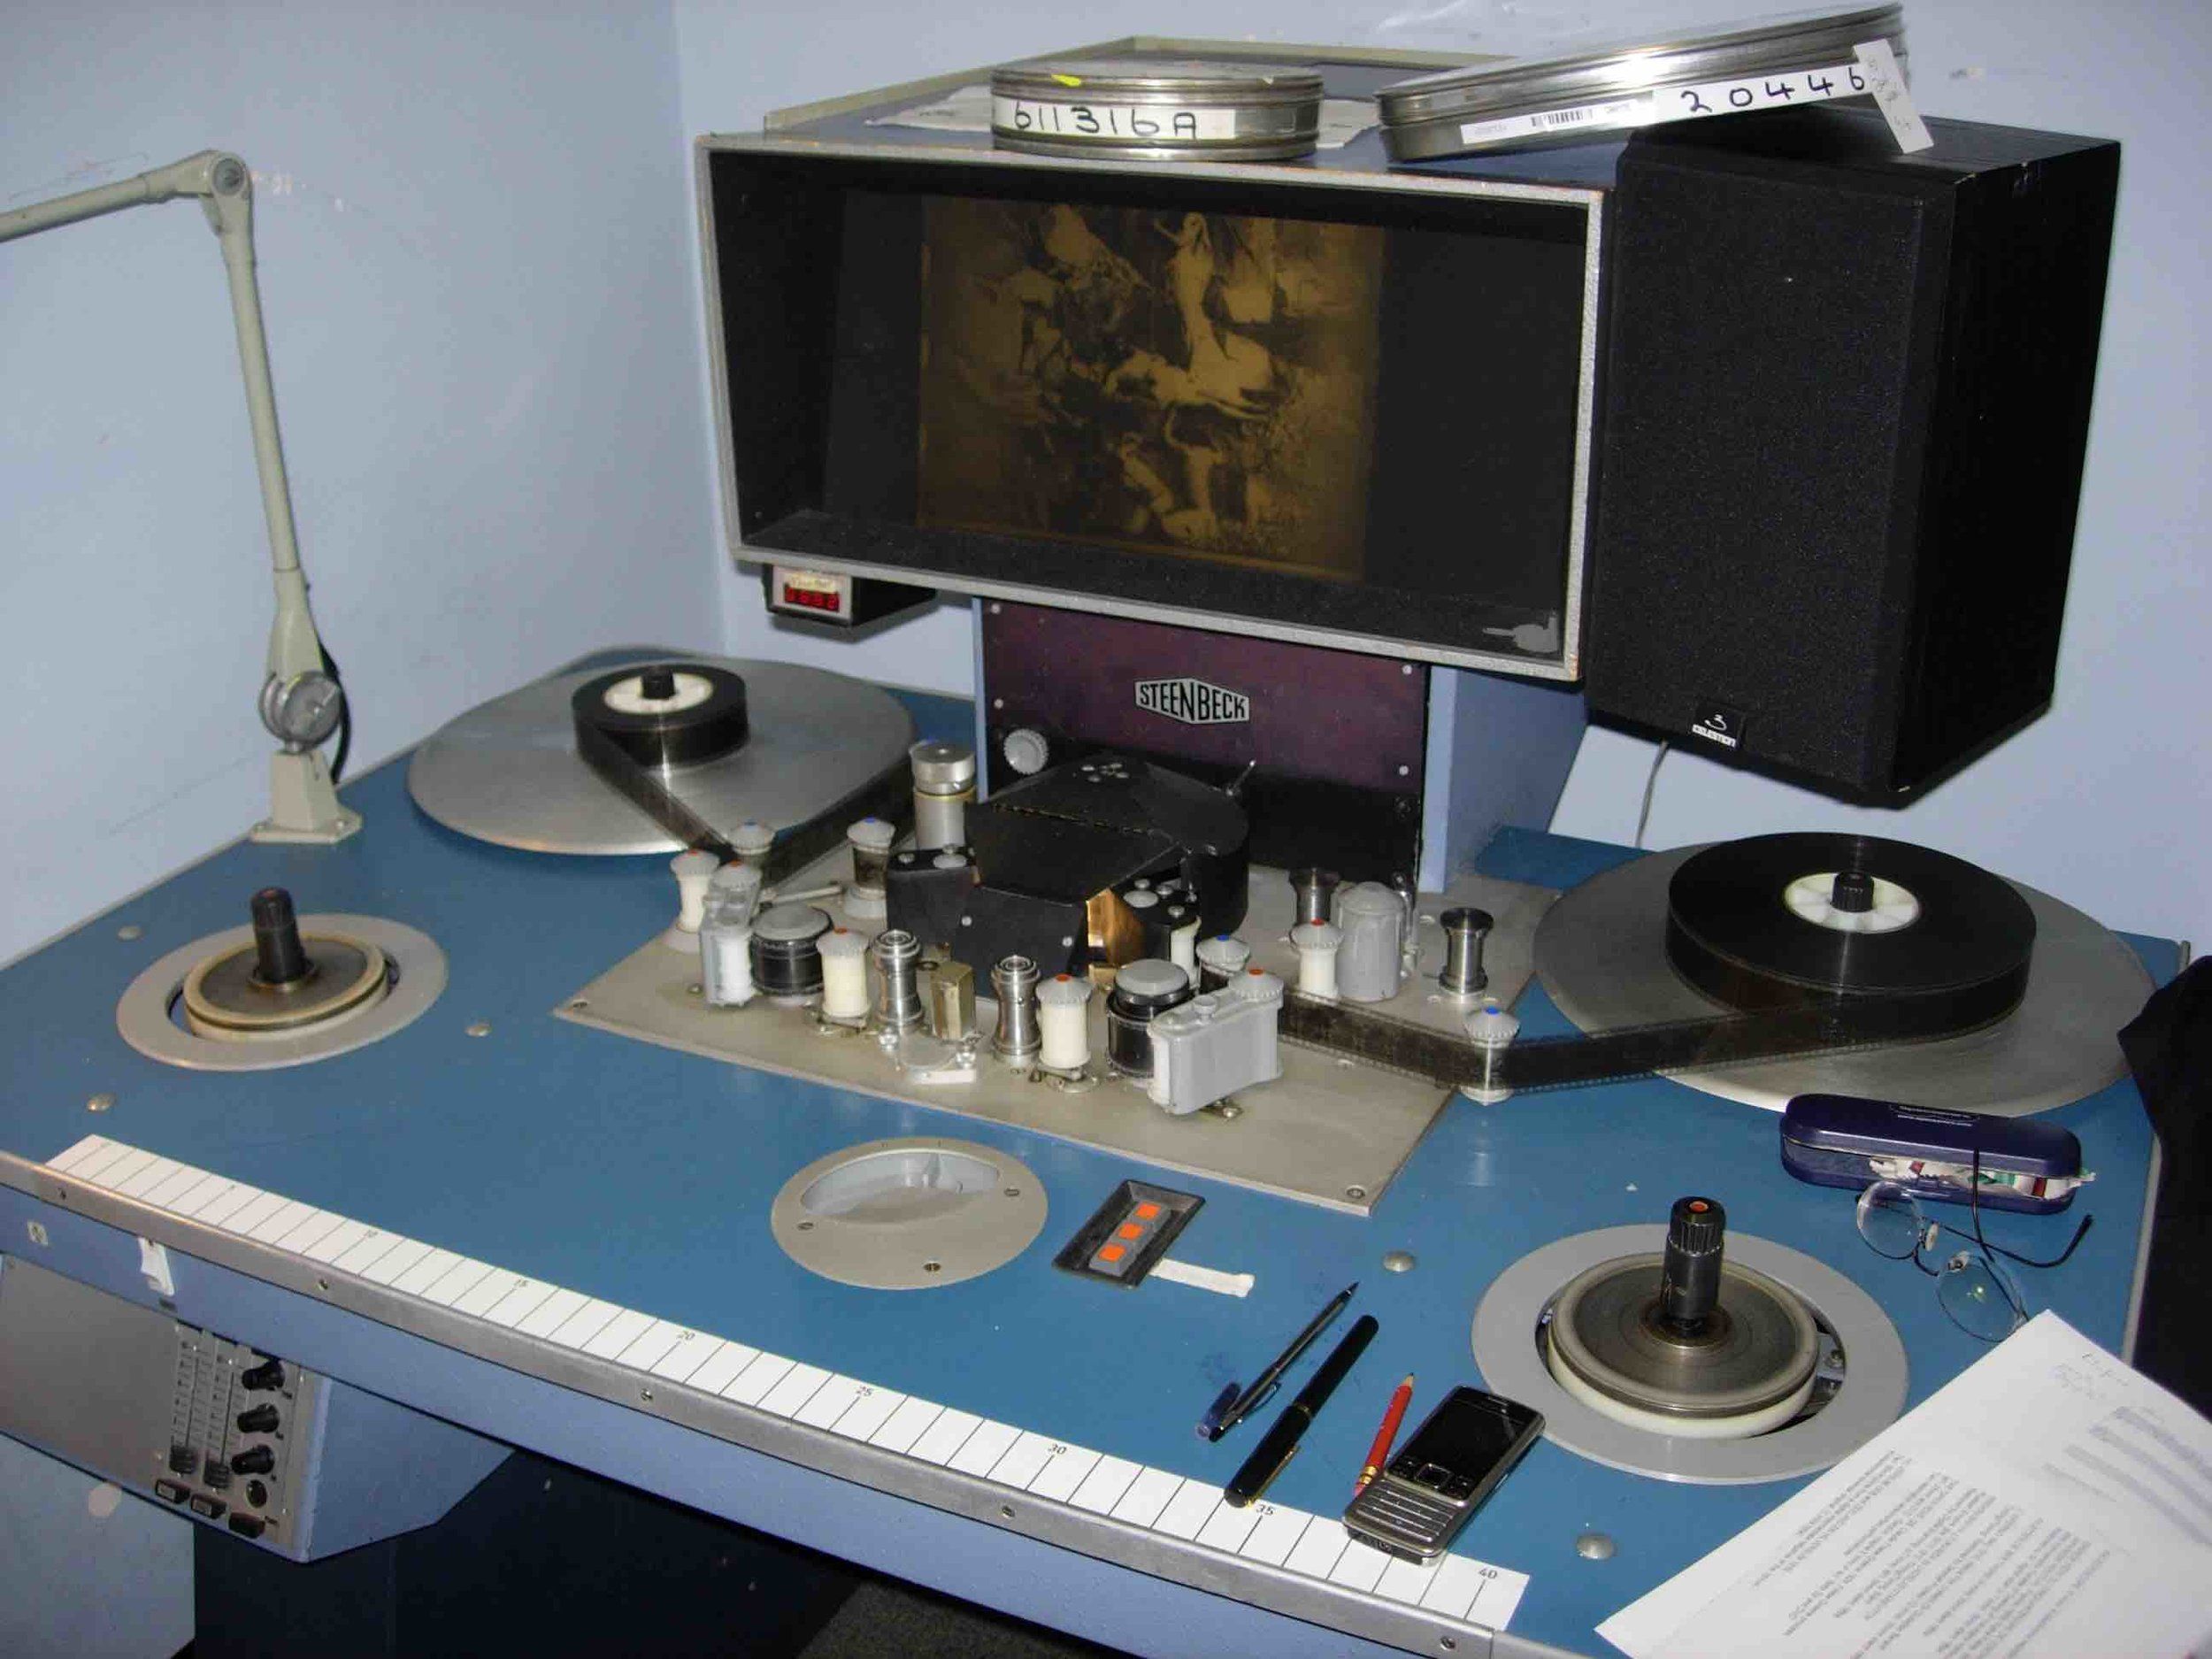 Viewing silent films on the BFI's Steinbeck machine, 2009